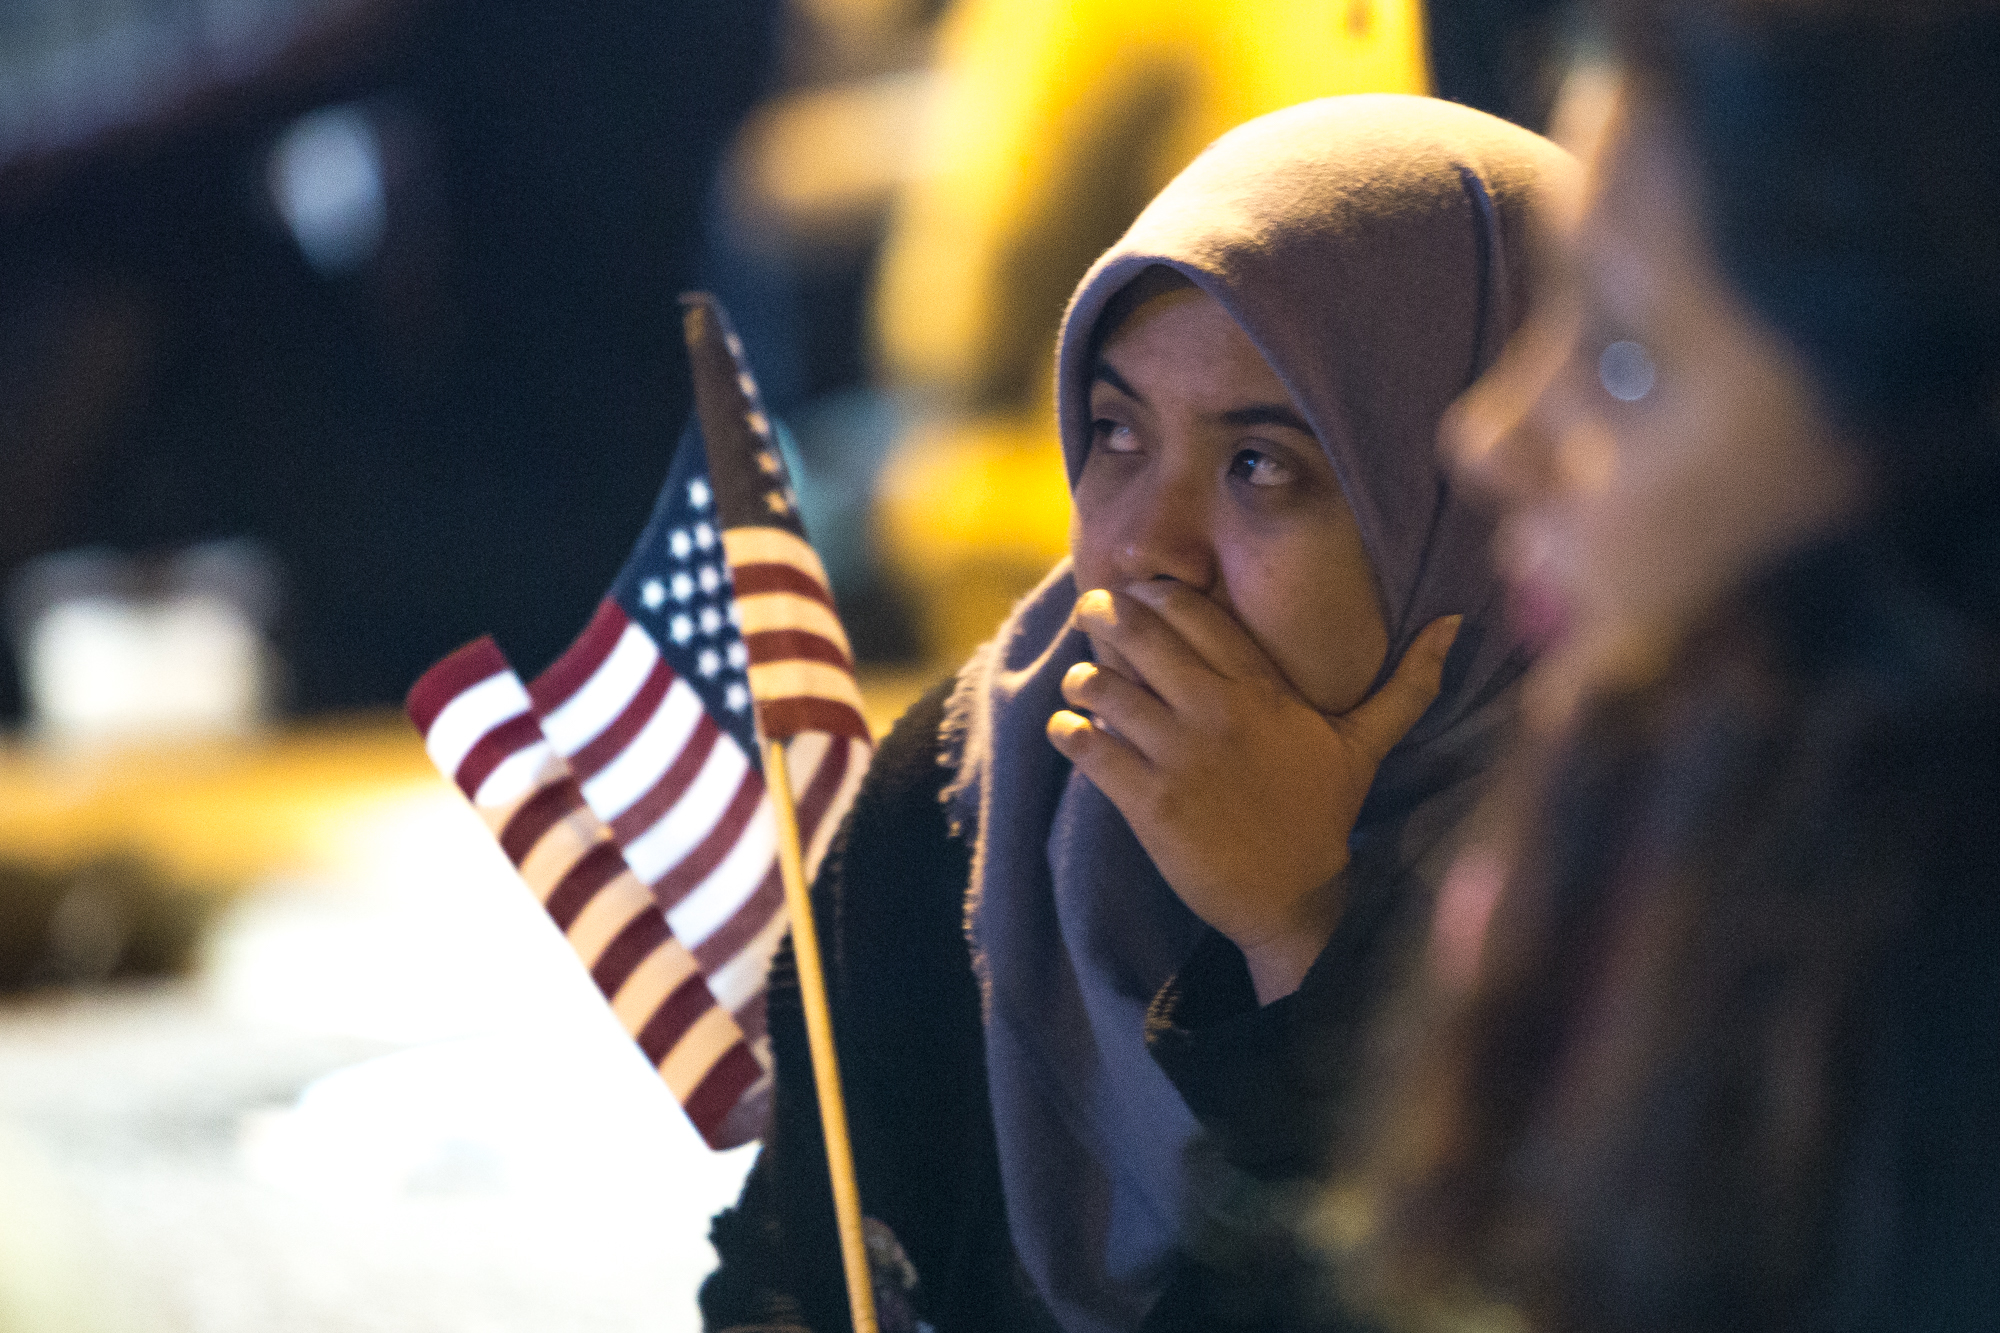 Farah Amalia, 21, of New York, watches commentary on the big screen television late in the night outside the Jacob K. Javits Convention Center in the early hours of Nov. 9, 2016. Earlier in the night, the venue was packed with room for standing only, but at attendees trickled out people began sitting on the ground or on the fence enclosing it. Some attendees had been waiting in line since about 1 p.m.